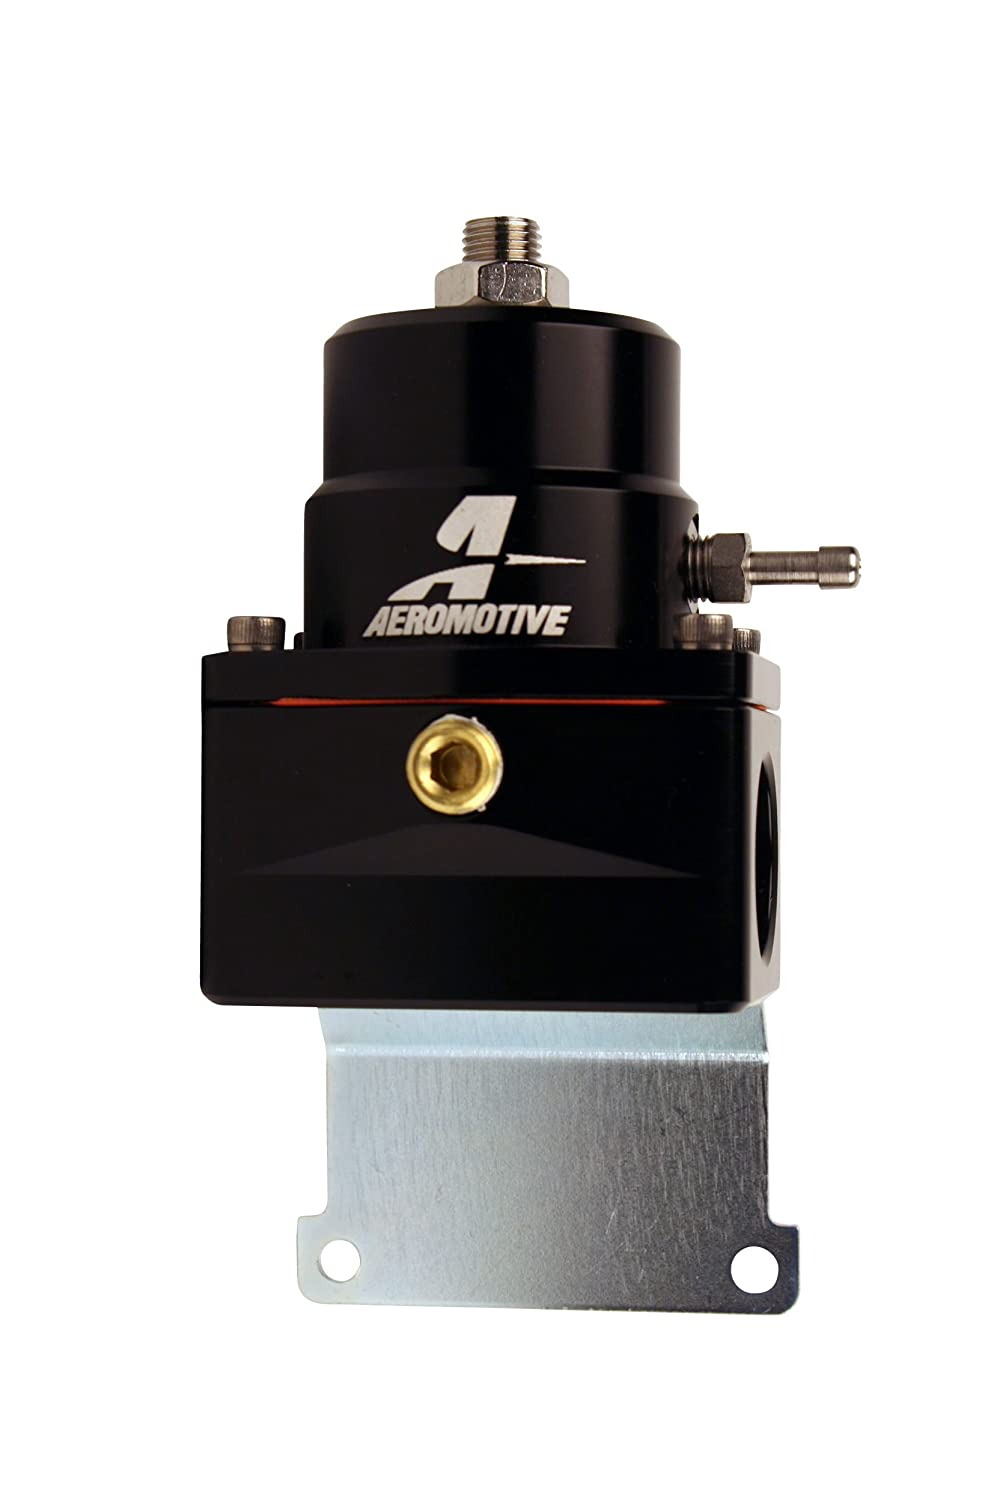 2 Aeromotive 13128 Regulator Adjustable EFI Black -10 inlets